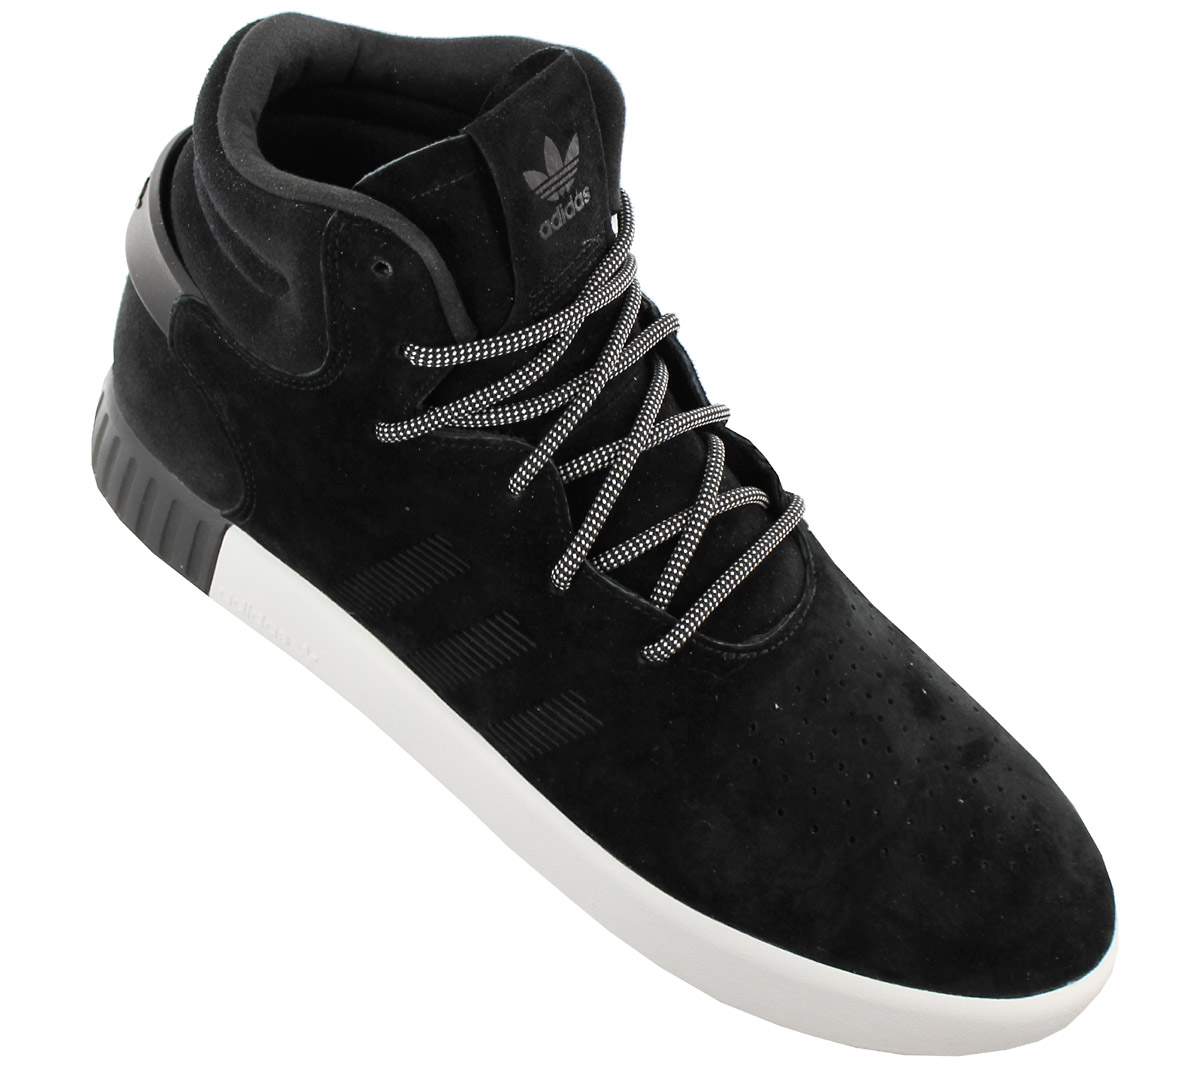 Adidas Originals Tubular Invader Men s Sneakers Shoes Leather Black ... 311e5fdee